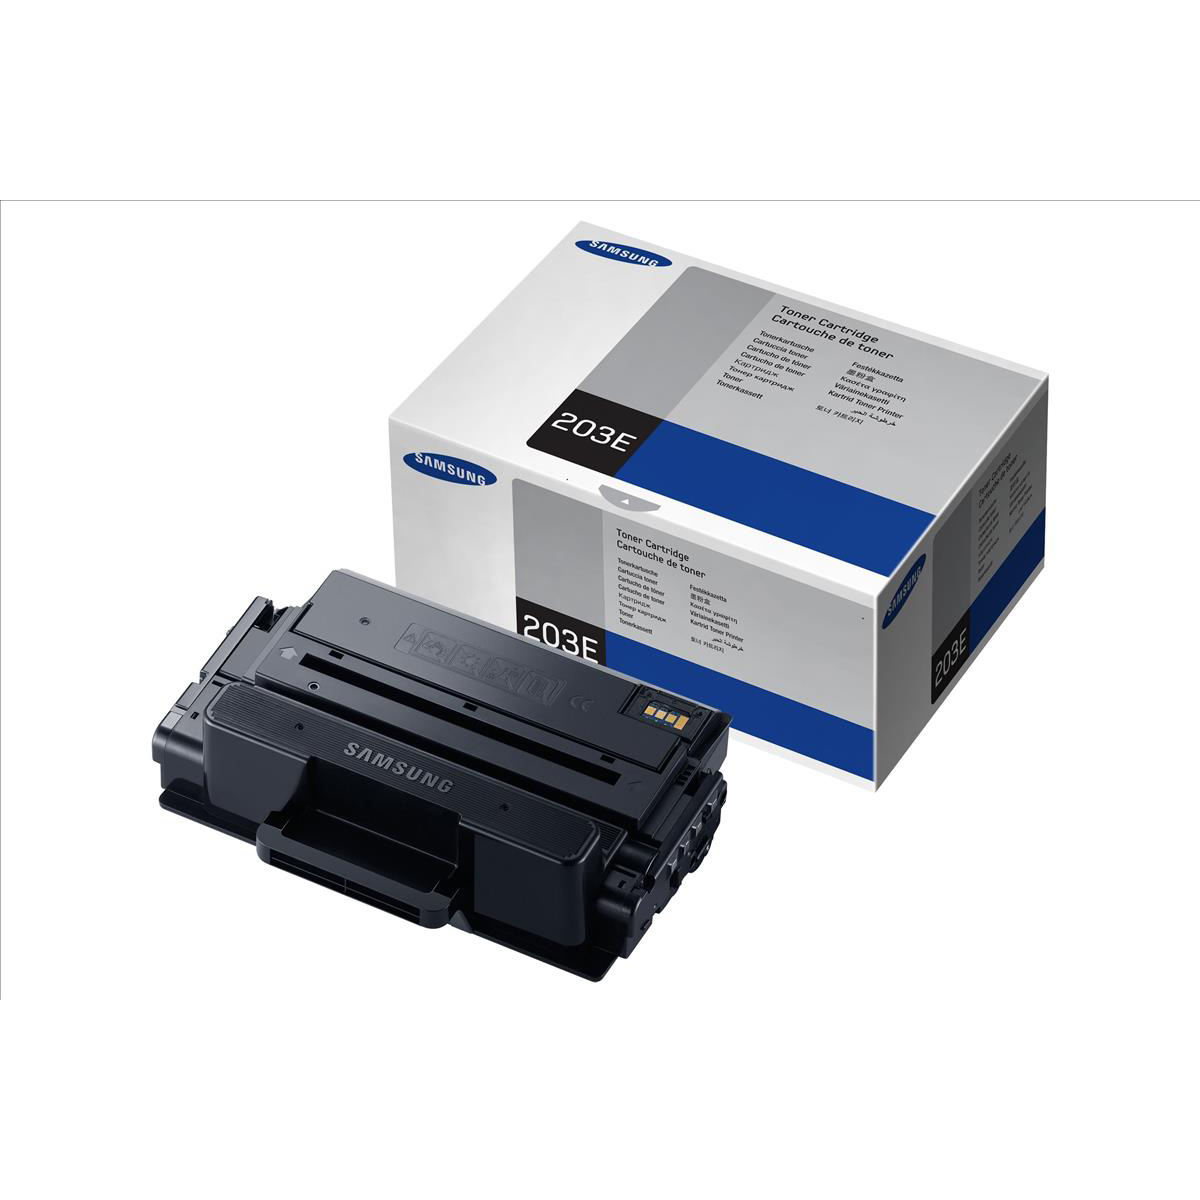 Samsung MLT-D203E Laser Toner Cartridge Extra High Yield Page Life 10,000pp Black Ref SU885A